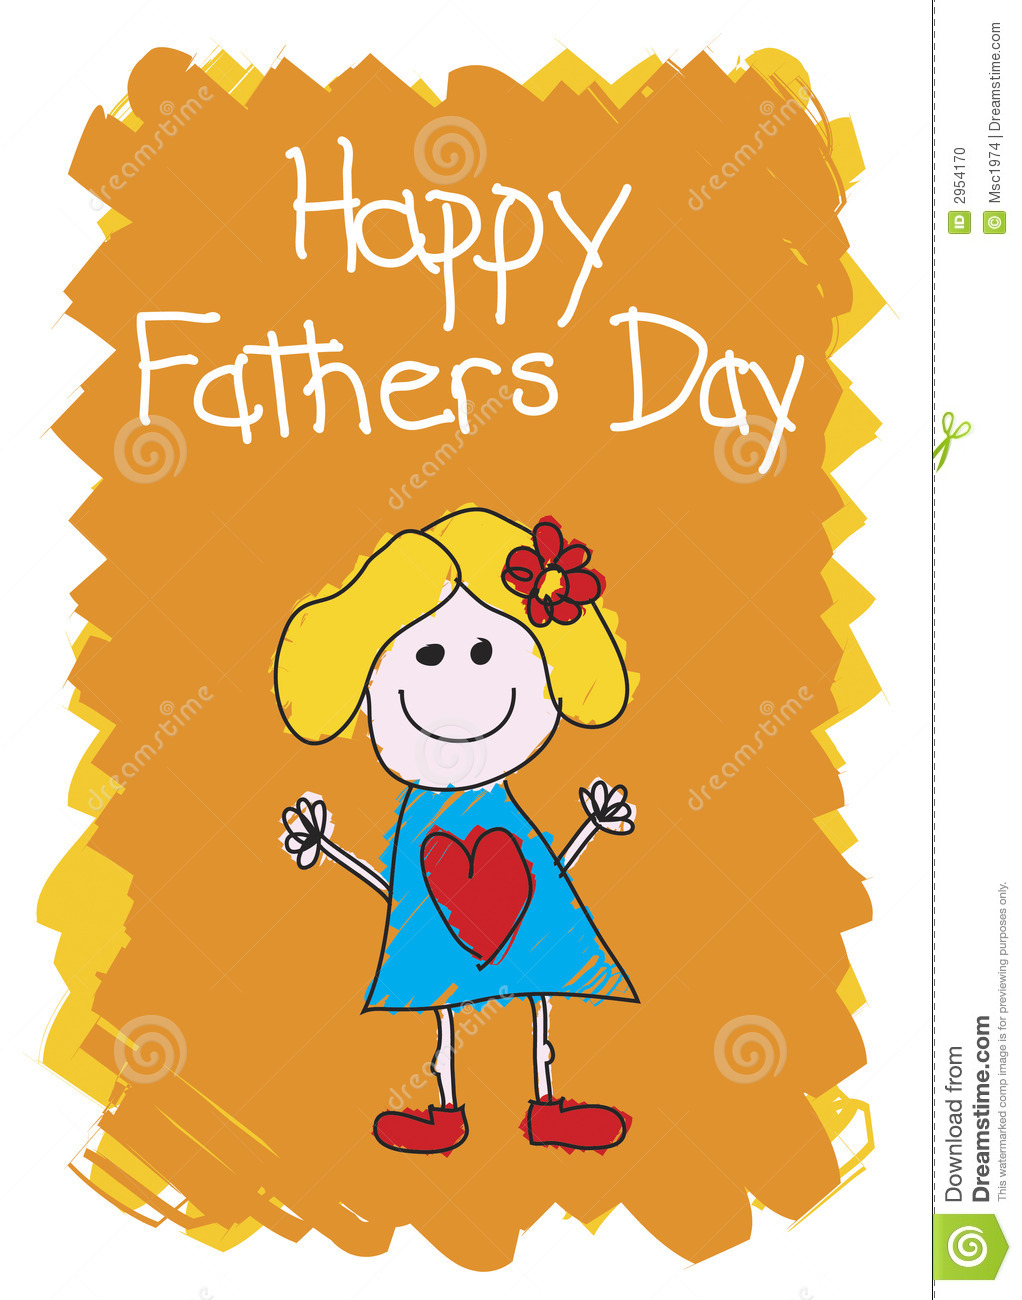 informat happy fathers day - HD1022×1300